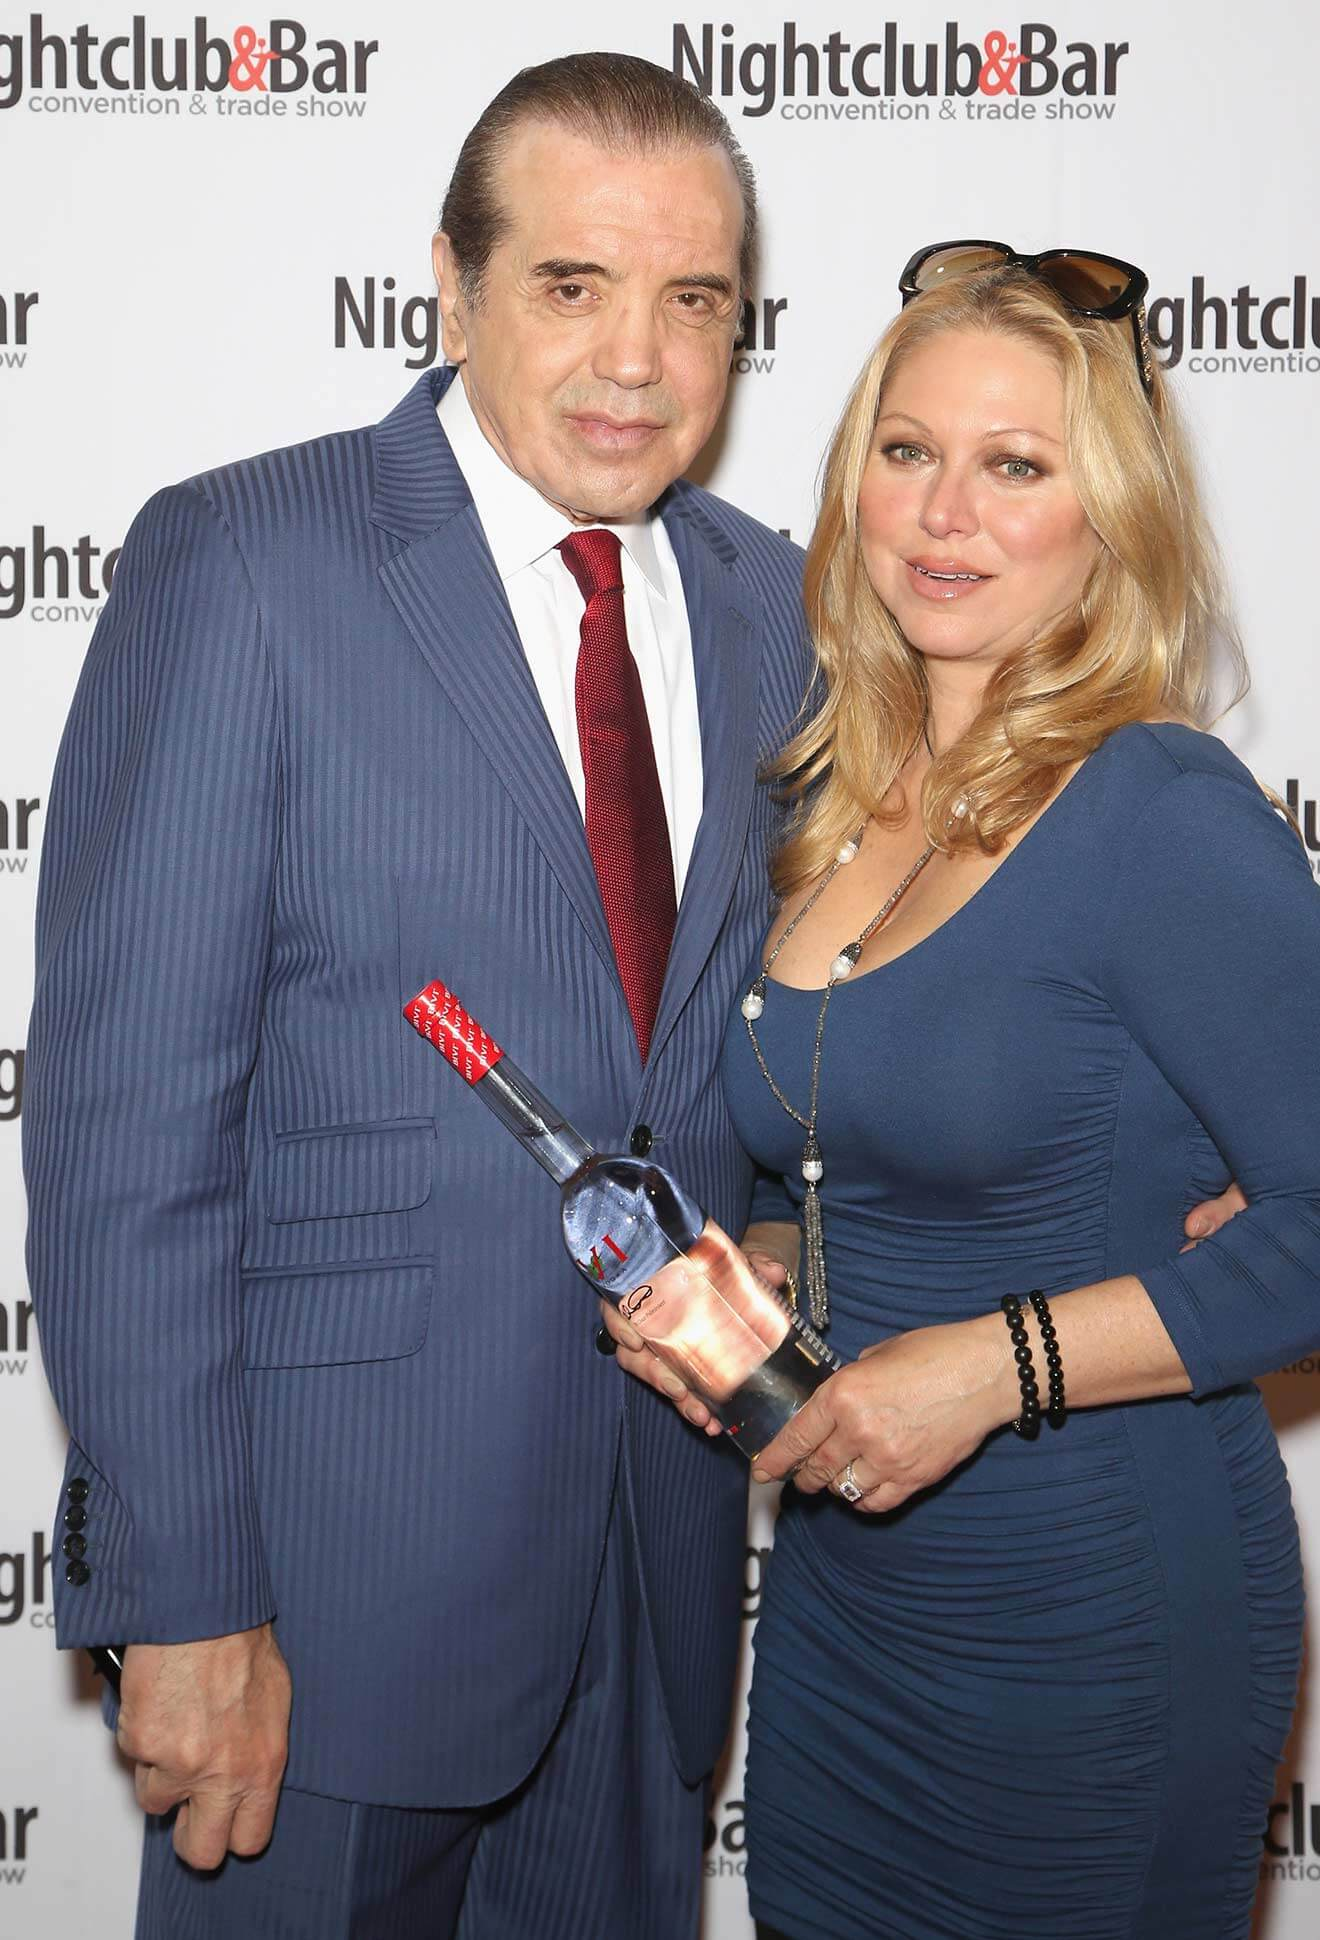 Actors Chazz Palminteri and Gianna Palminteri attend 31st Annual Nightclub & Bar Convention and Trade Show